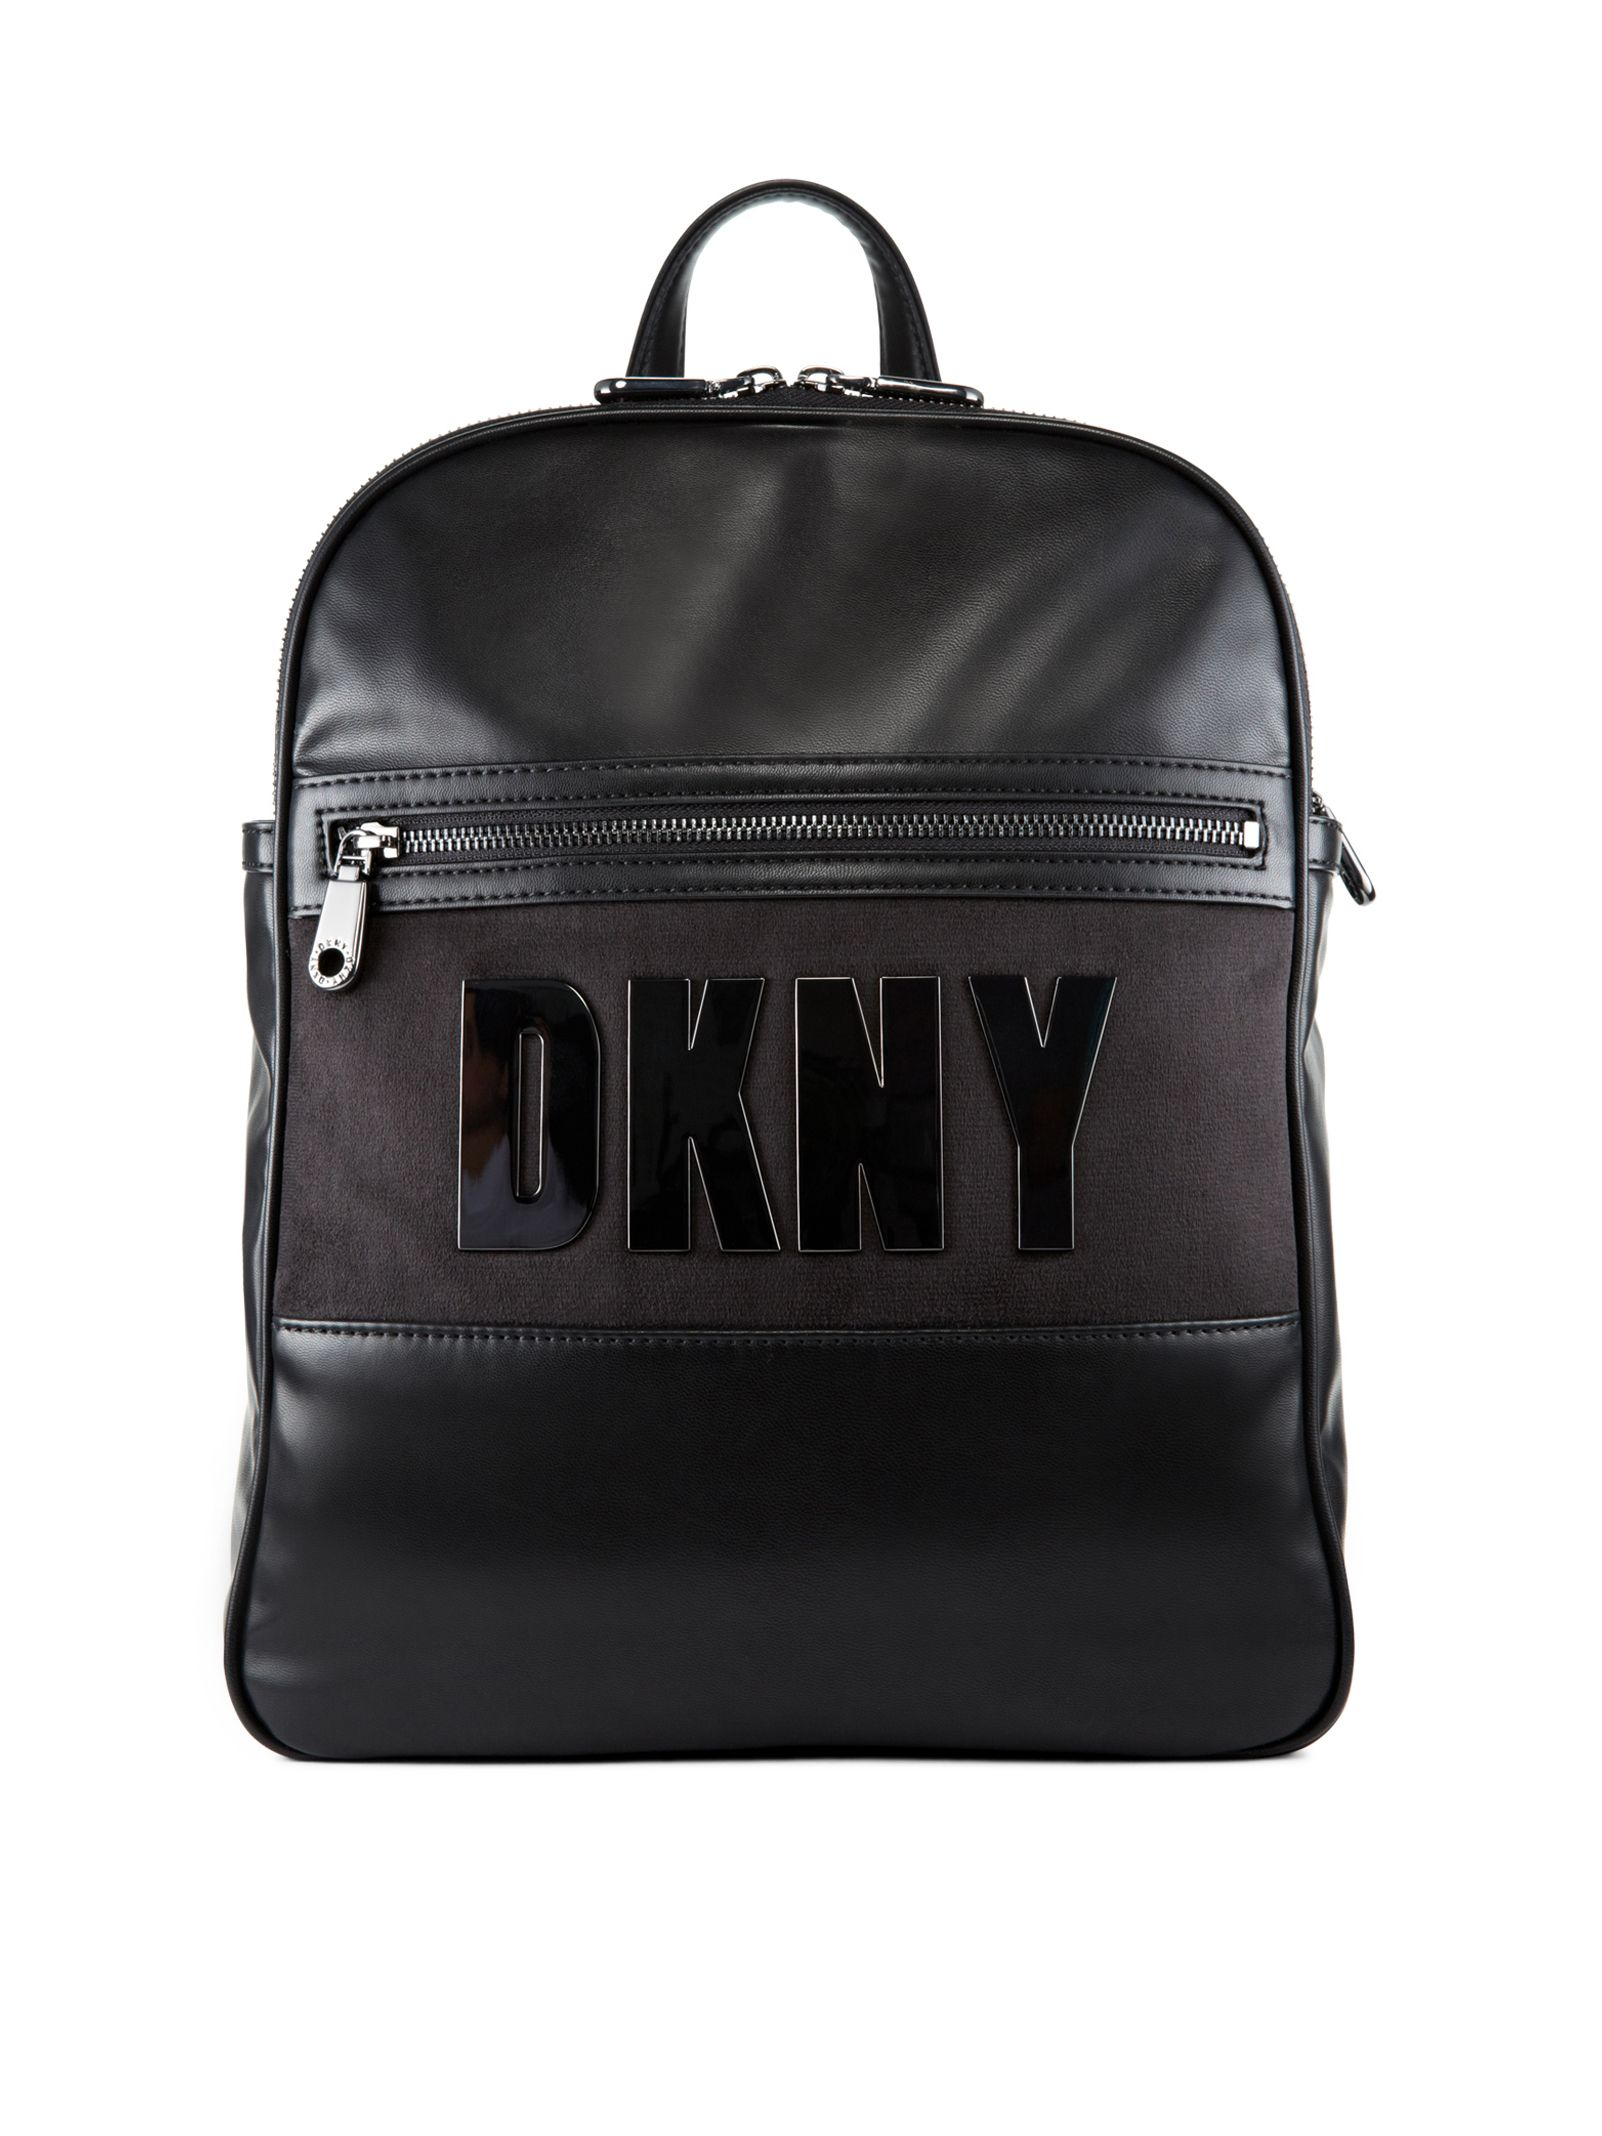 68ebbd8b13 DKNY Letter Backpack